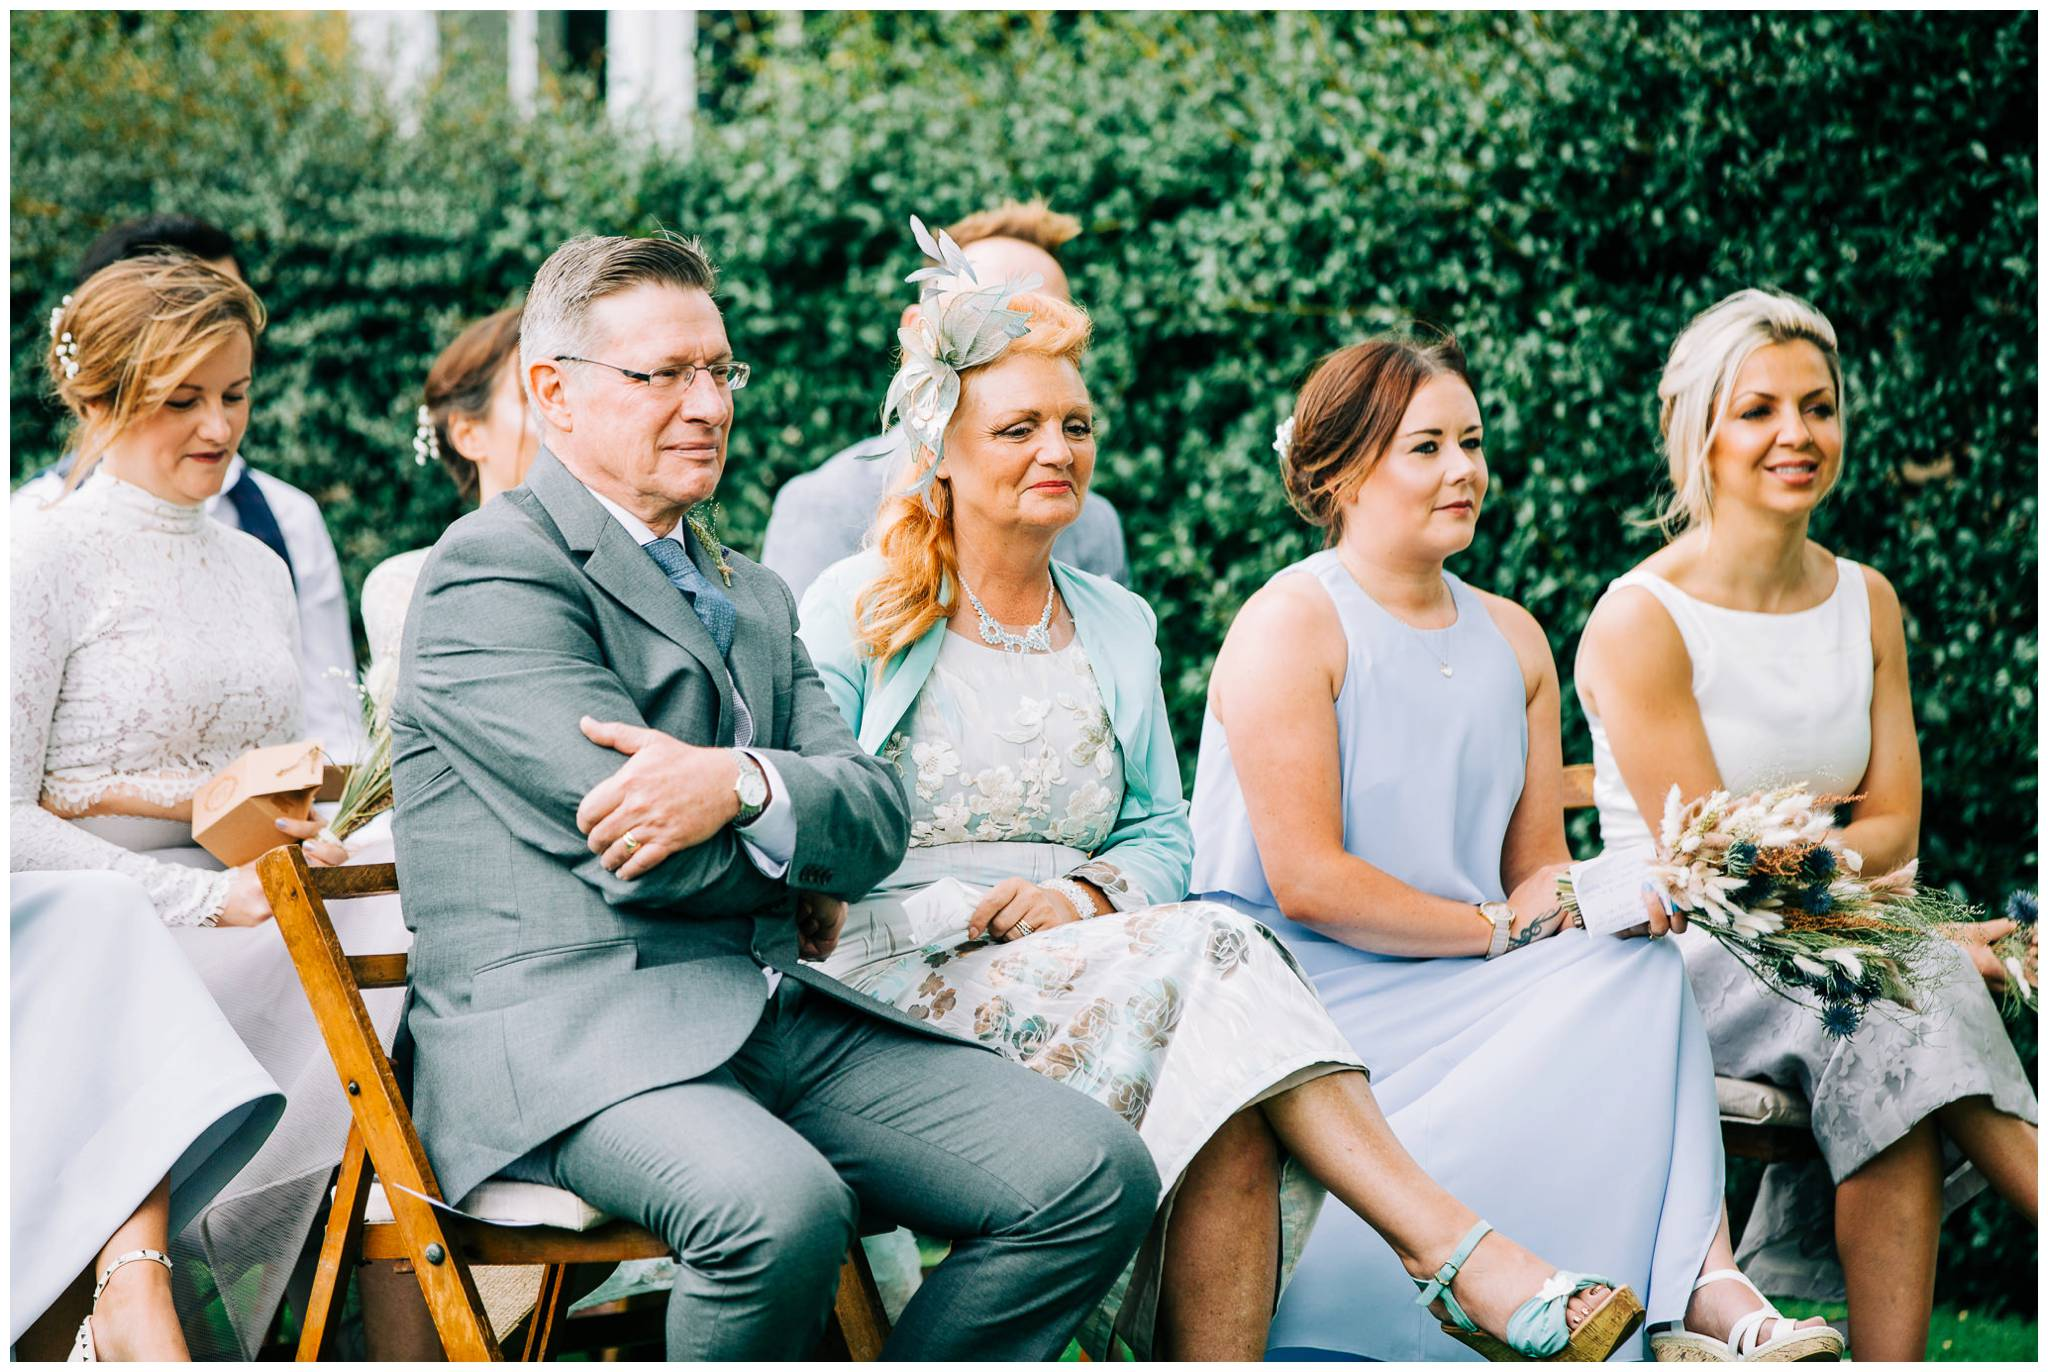 Natural wedding photography Manchester - Clare Robinson Photography_0259.jpg